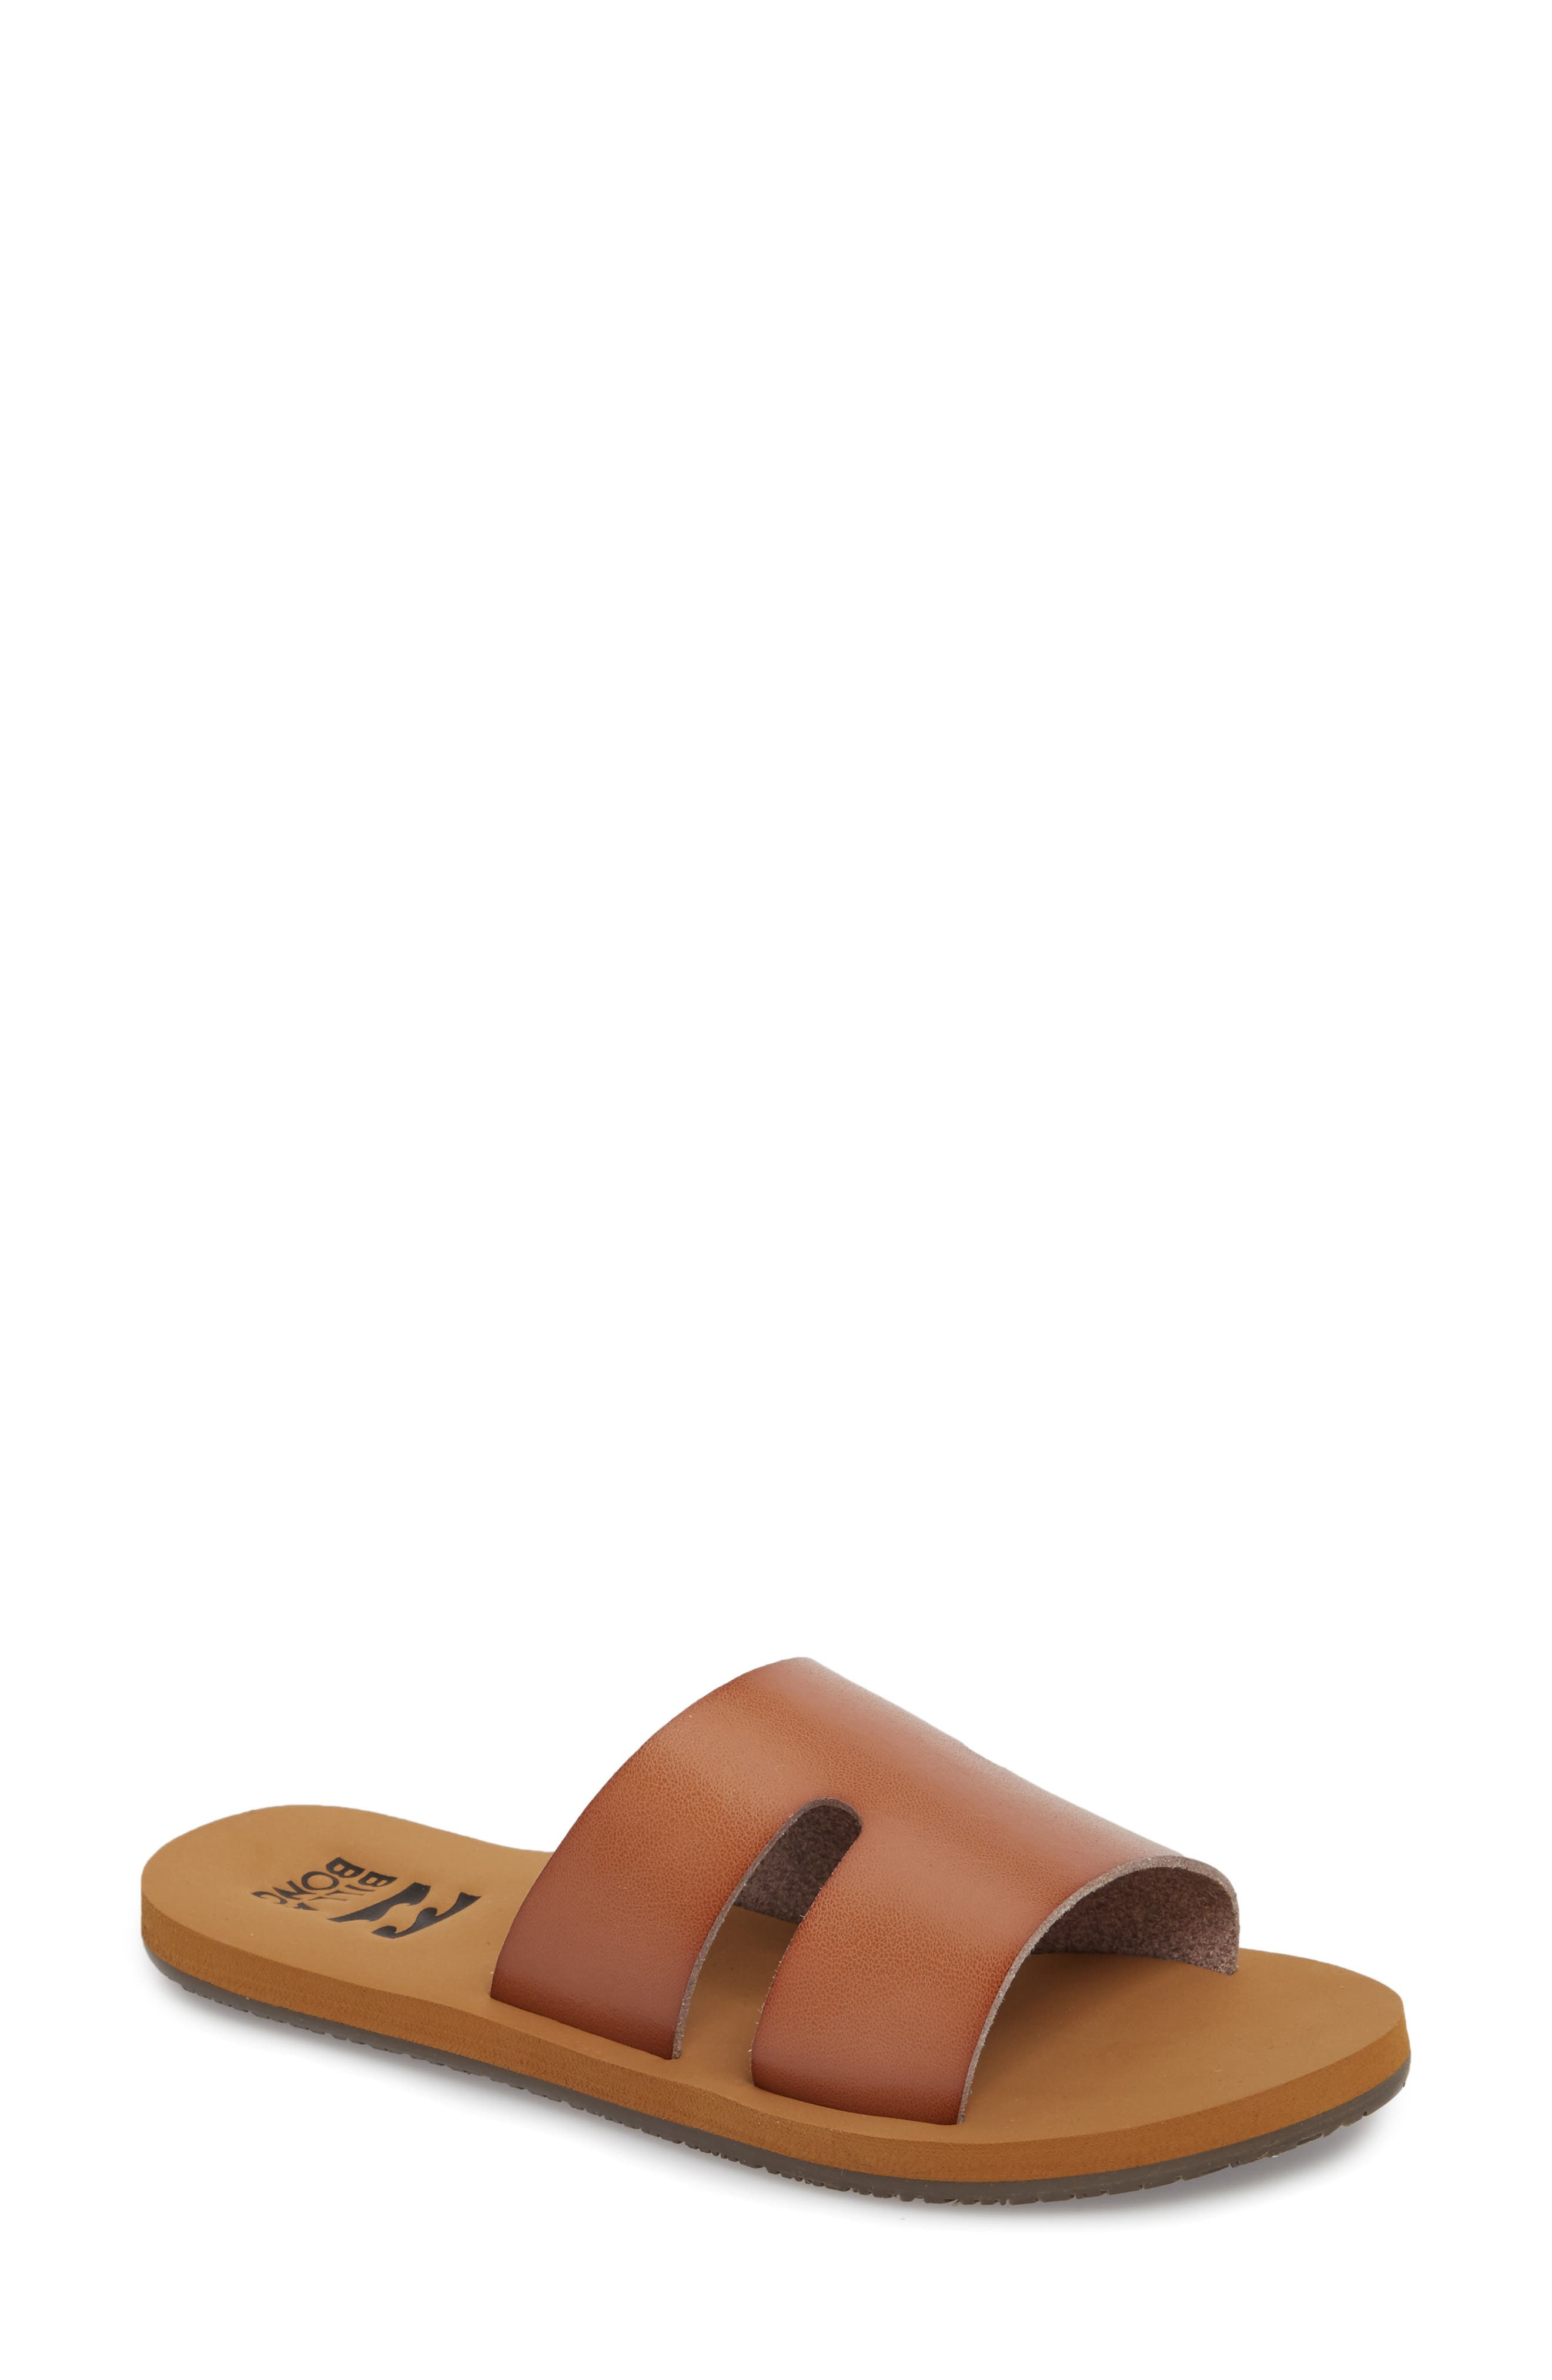 Wander Often Slide Sandal,                         Main,                         color, DESERT BROWN